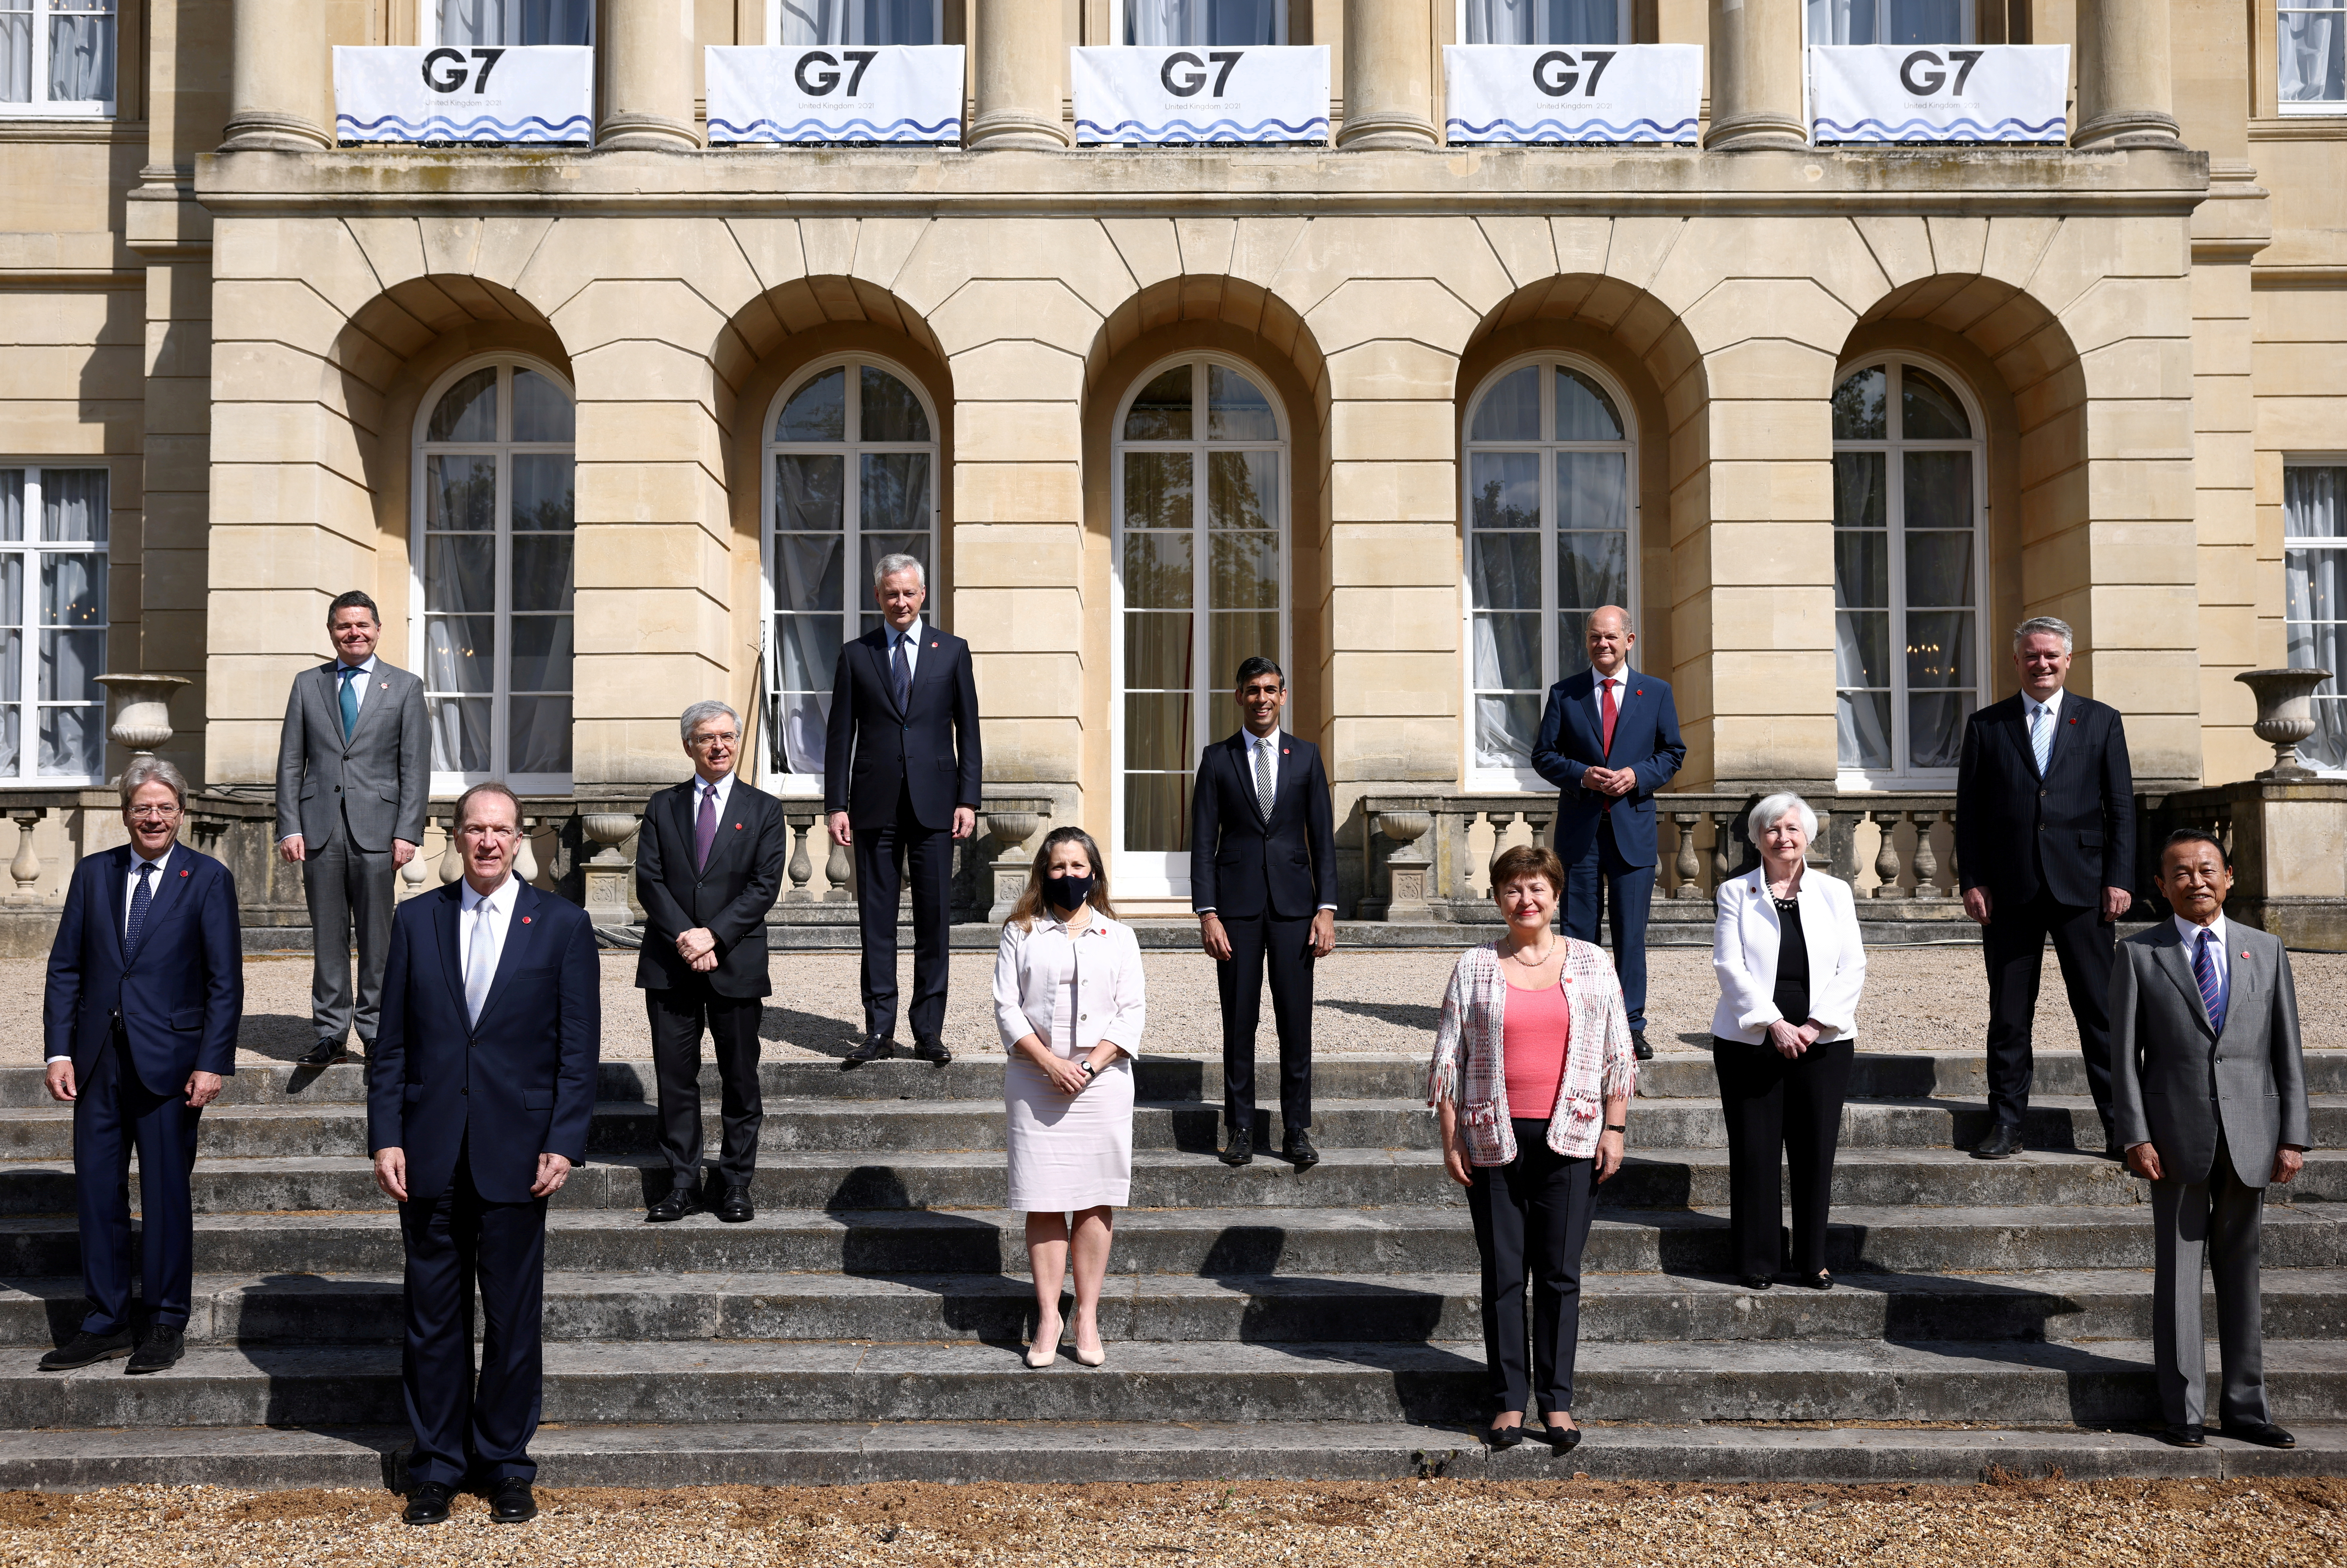 EU's Economy Commissioner Paolo Gentiloni, Eurogroup President Paschal Donohoe, World Bank President David Malpass, Italy's Finance Minister Daniele Franco, French Finance Minister Bruno Le Maire, Canada's Finance Minister Chrystia Freeland, Britain's Chancellor of the Exchequer Chancellor Rishi Sunak, Managing Director of the IMF Kristalina Georgieva, Germany's Finance Minister Olaf Scholz, U.S. Treasury Secretary Janet Yellen, Secretary-General of the Organisation for Economic Co-operation and Development (OECD) Mathias Cormann, Japan's Finance Minister Taro Aso pose for a family photo during the G7 finance ministers meeting at Lancaster House in London, Britain, June 5, 2021. REUTERS/Henry Nicholls